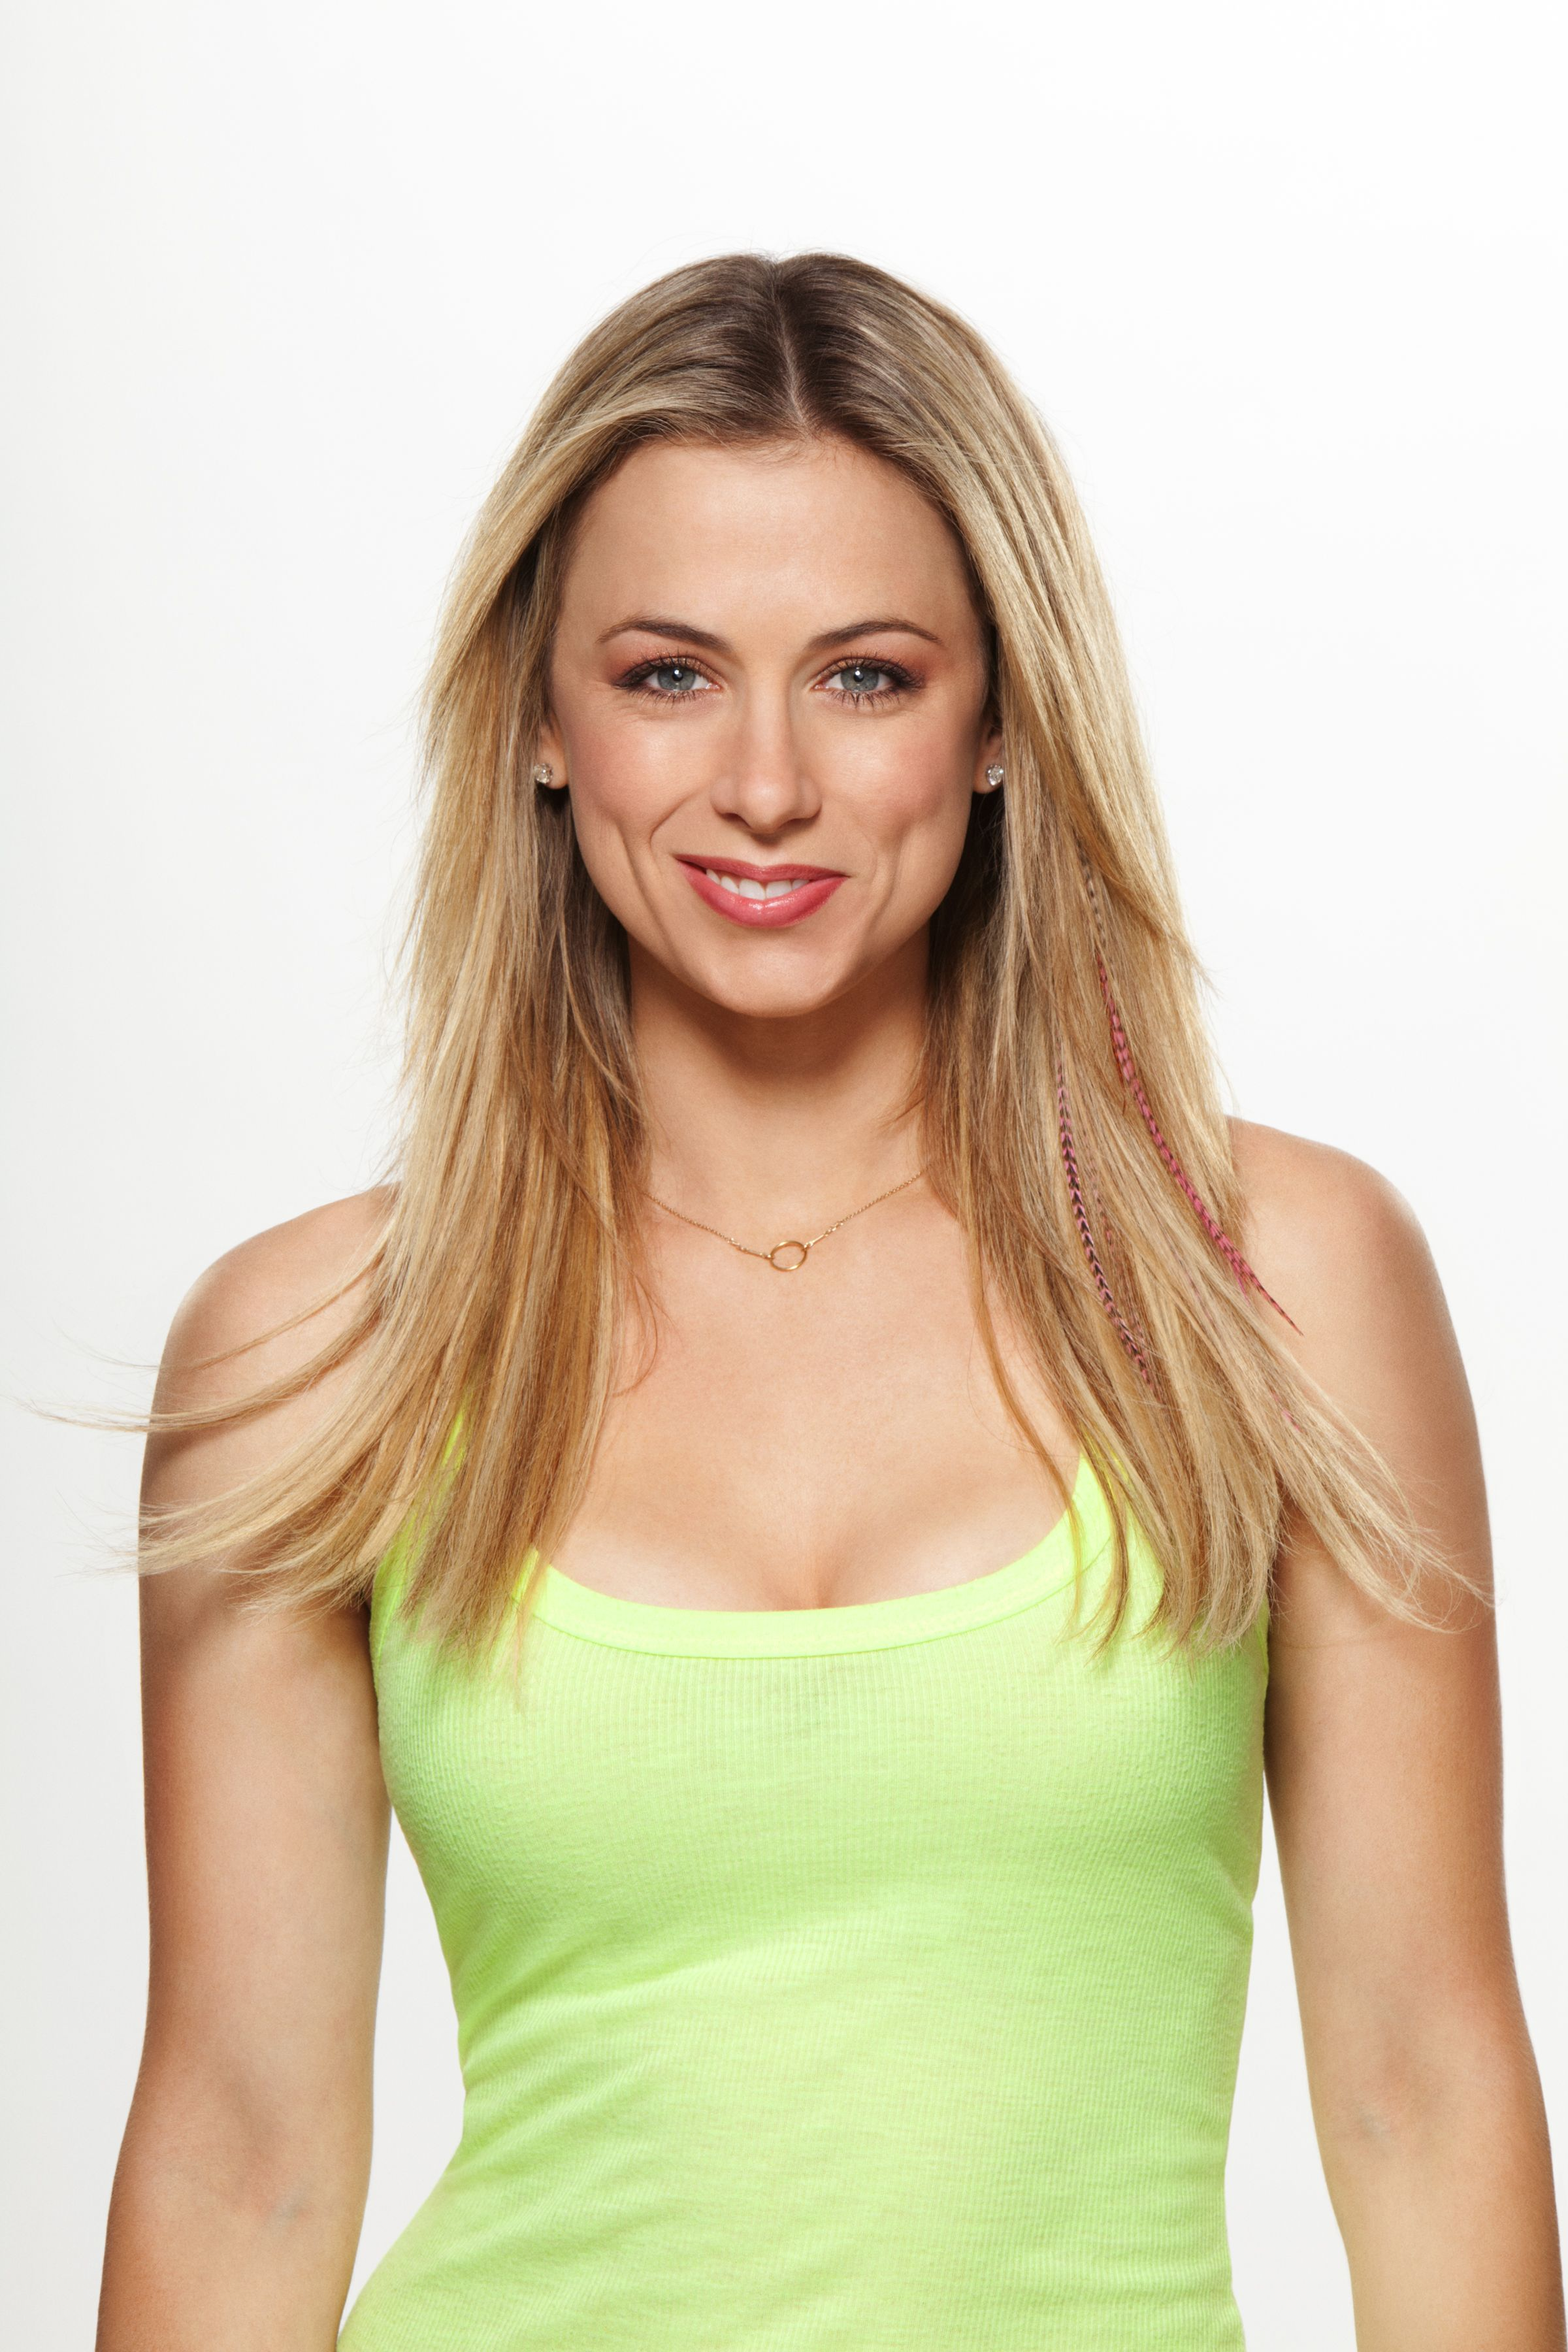 Iliza Shlesinger nudes (93 fotos) Tits, Twitter, see through